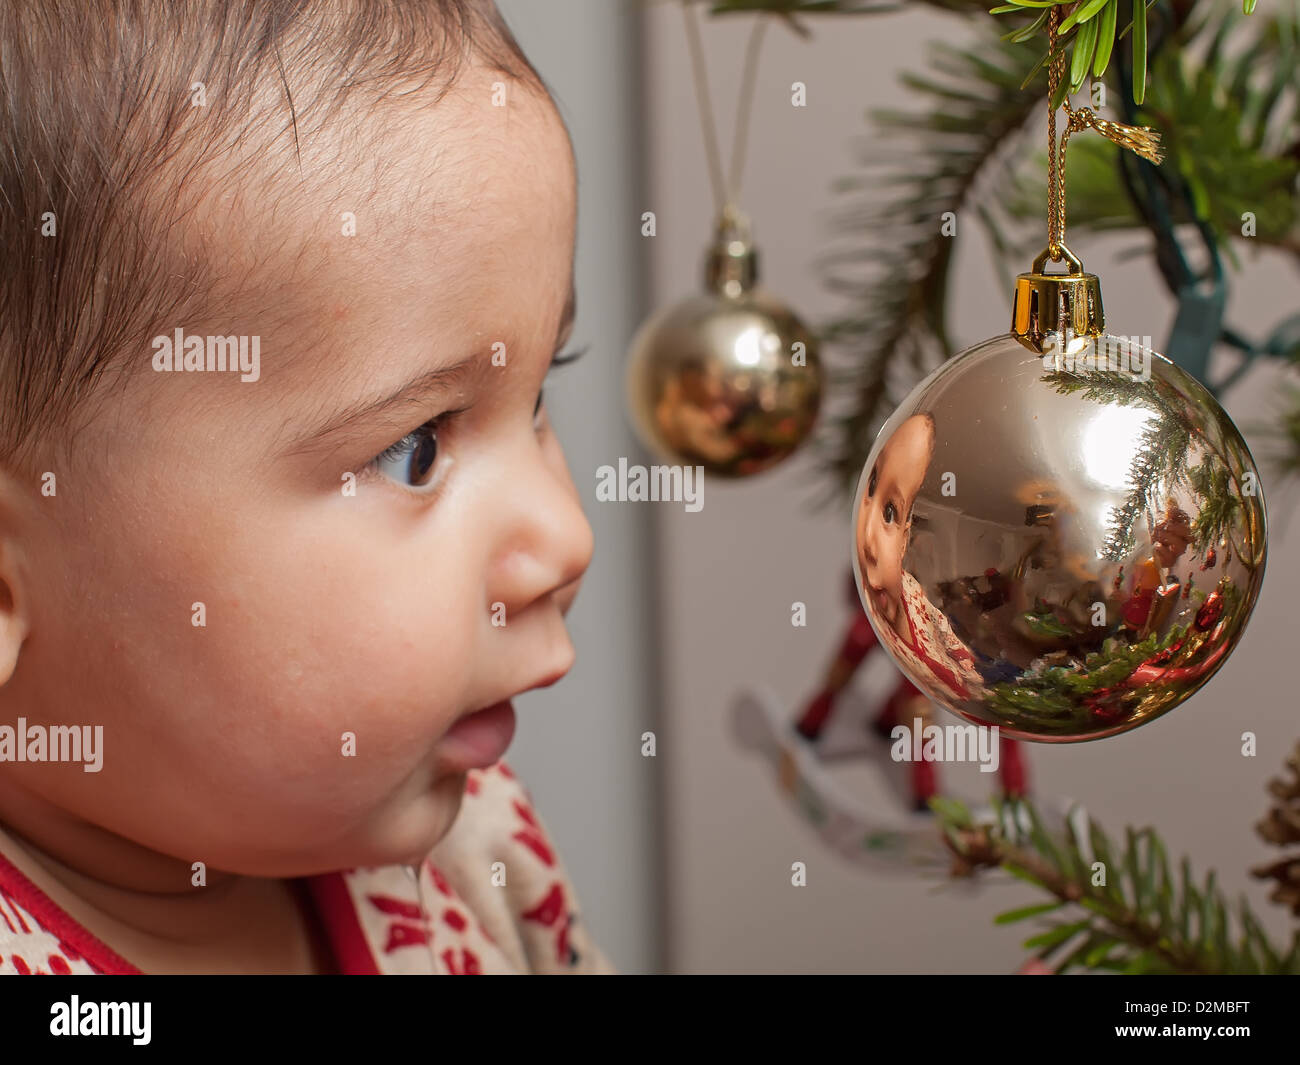 6 month old baby looking at reflection in christmas bauble stock image - What To Get A 6 Month Old For Christmas